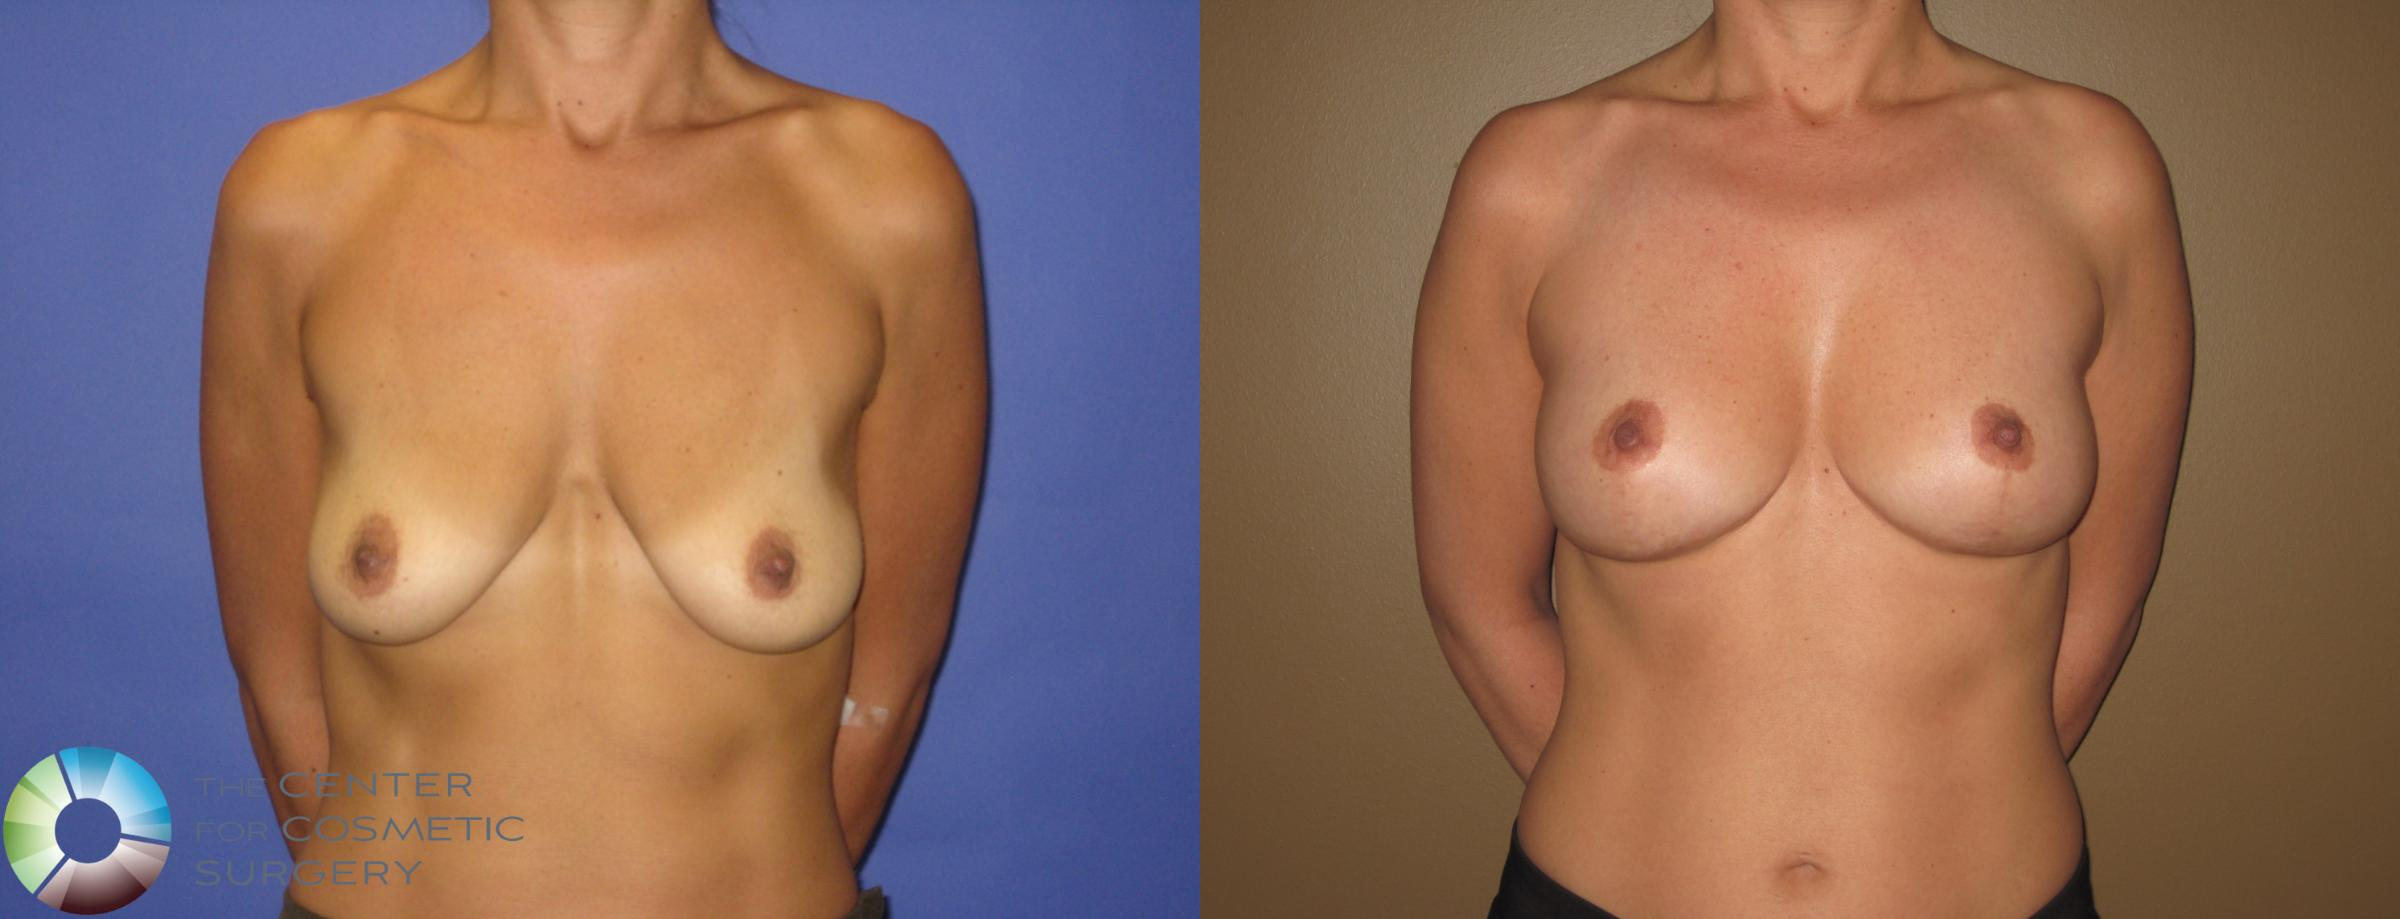 Breast Lift Case 390 Before & After View #1 | Golden, CO | The Center for Cosmetic Surgery